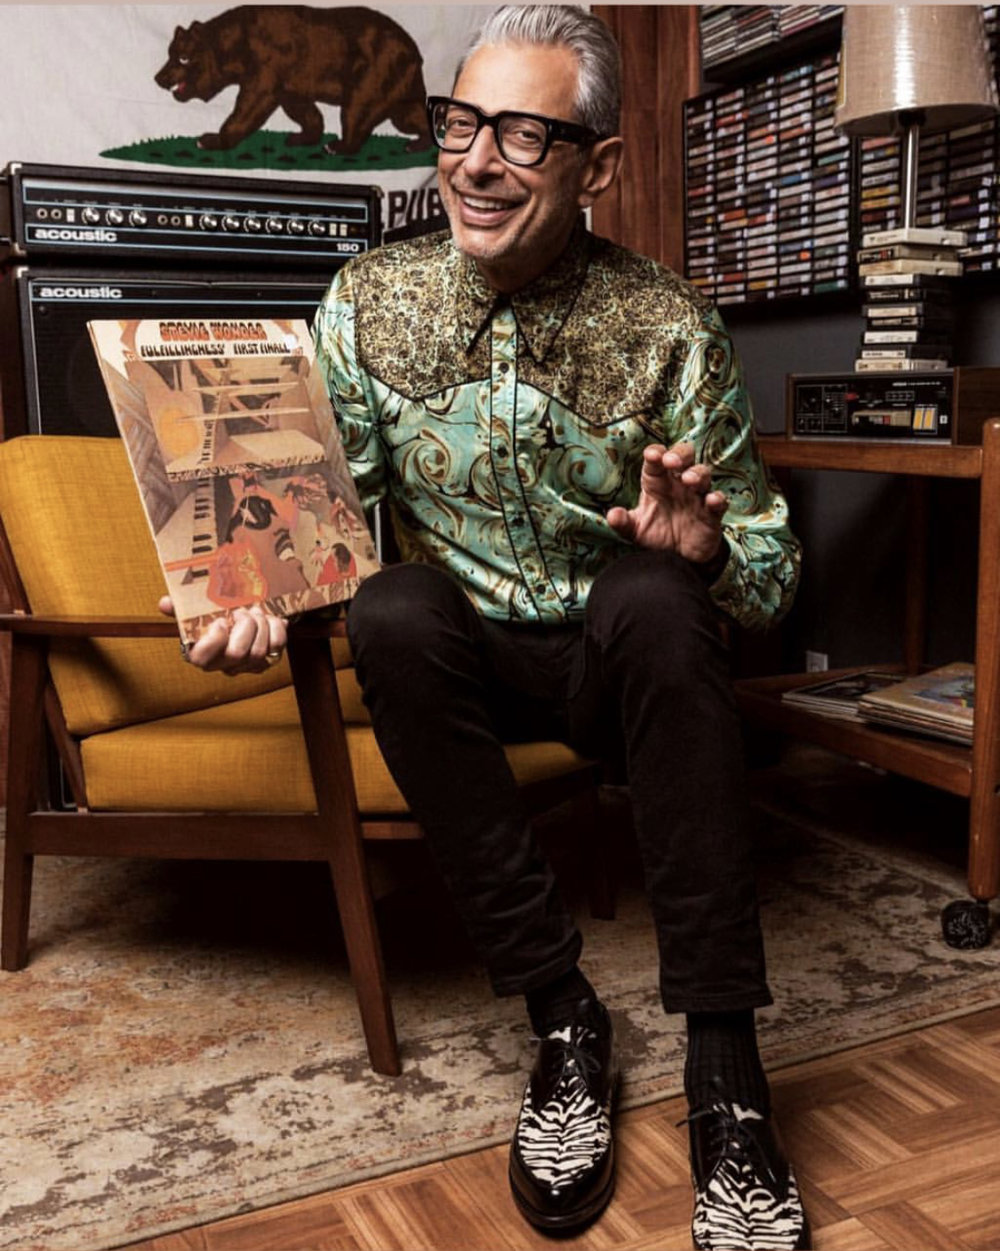 Photo shoot with Jeff Goldblum for Q Magazine UK.